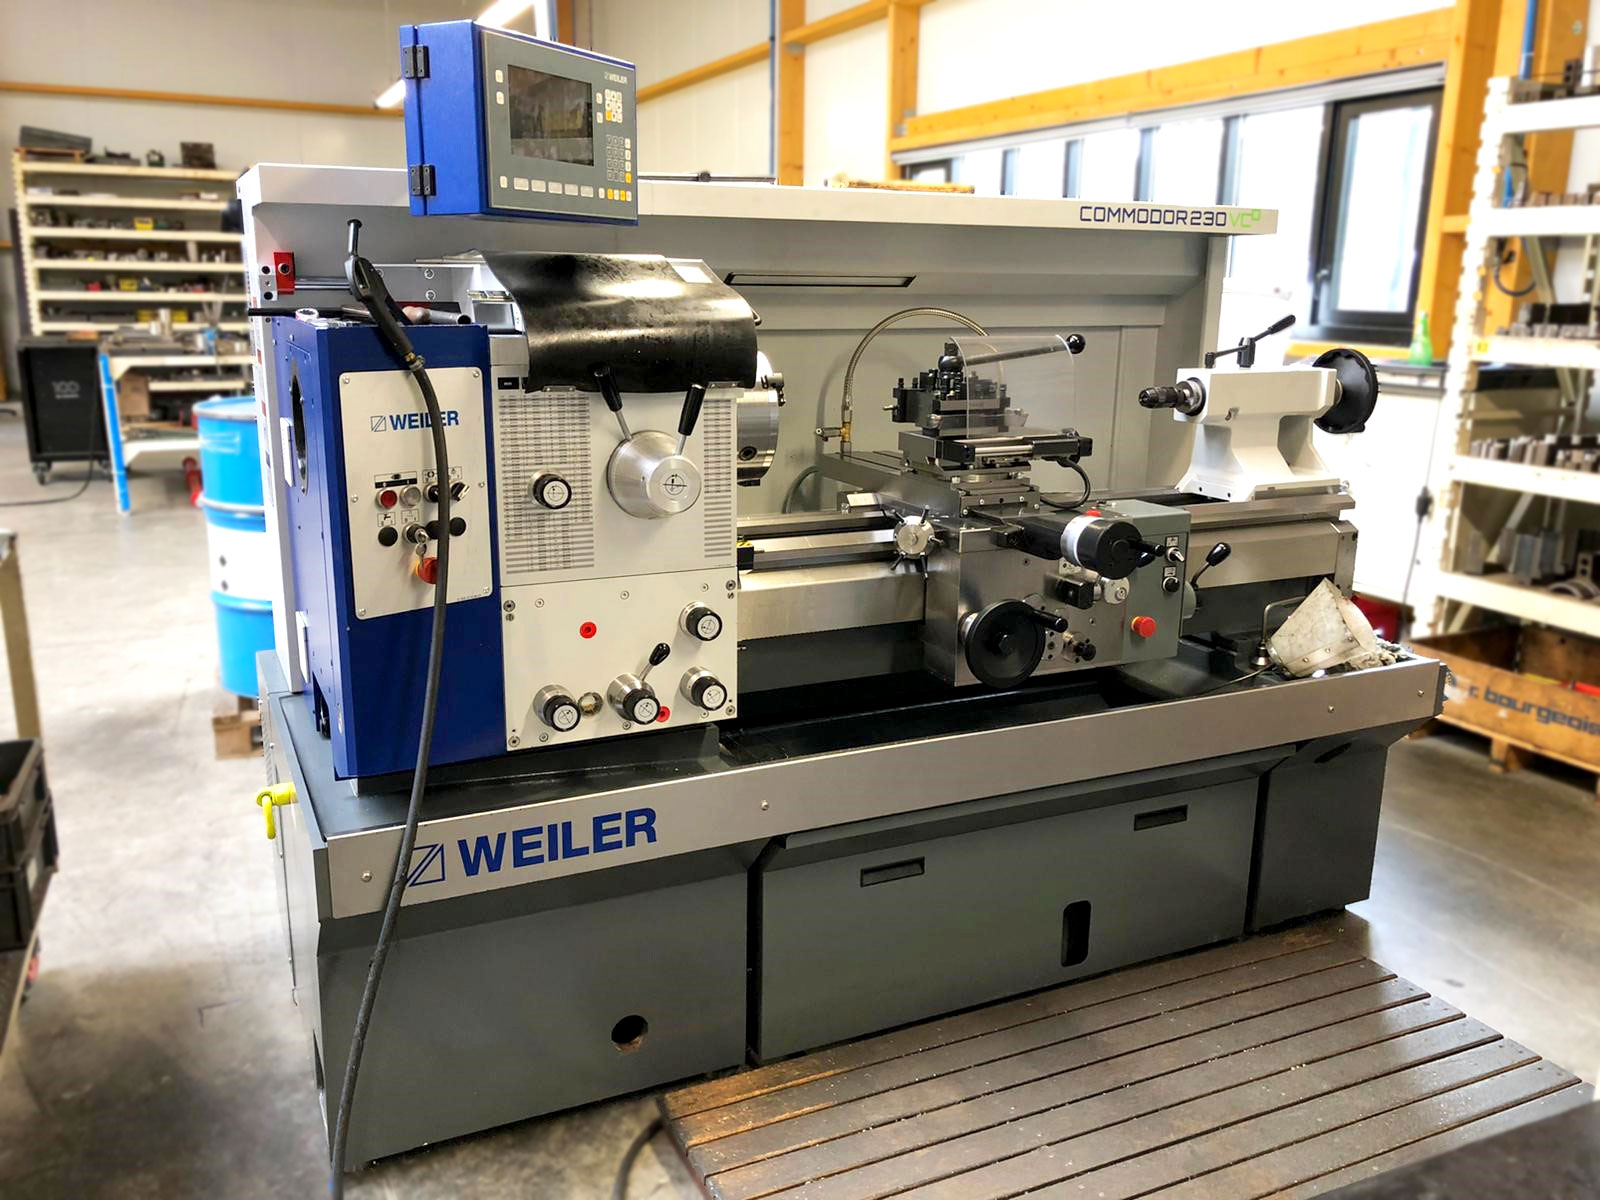 Tour-conventionnel-Weiler-Commodor-230-VCD-RATMO